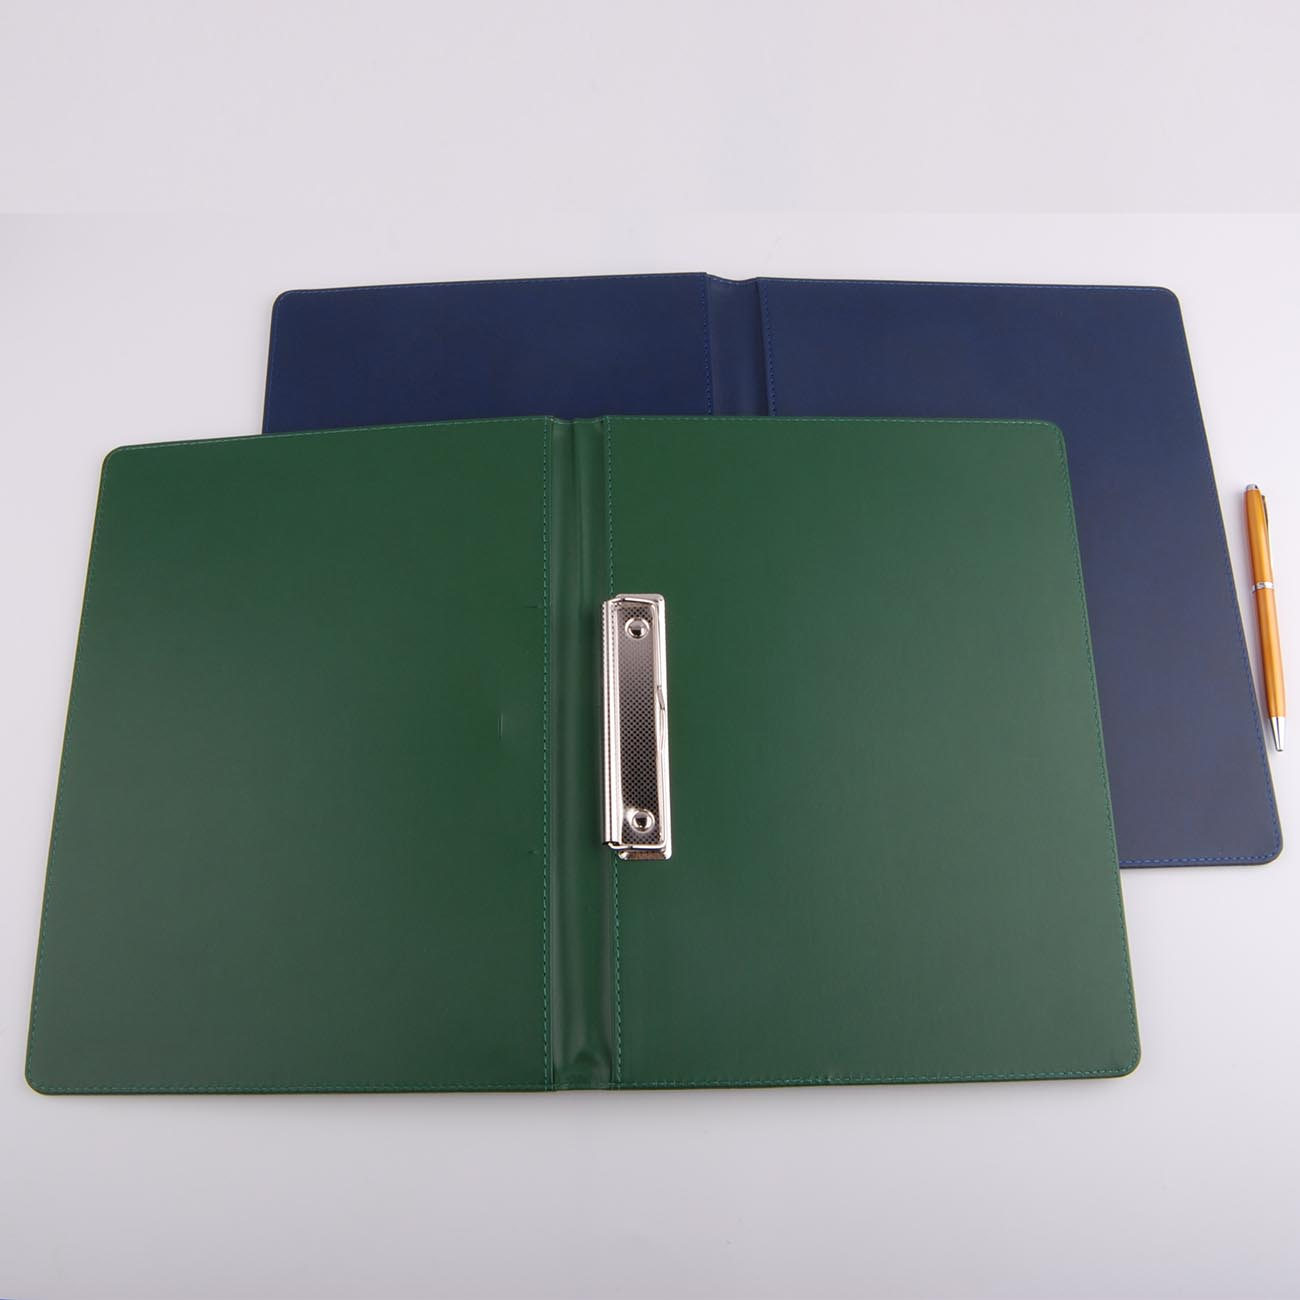 http://www.best-notebook.com/data/images/product/20170904114907_969.jpg